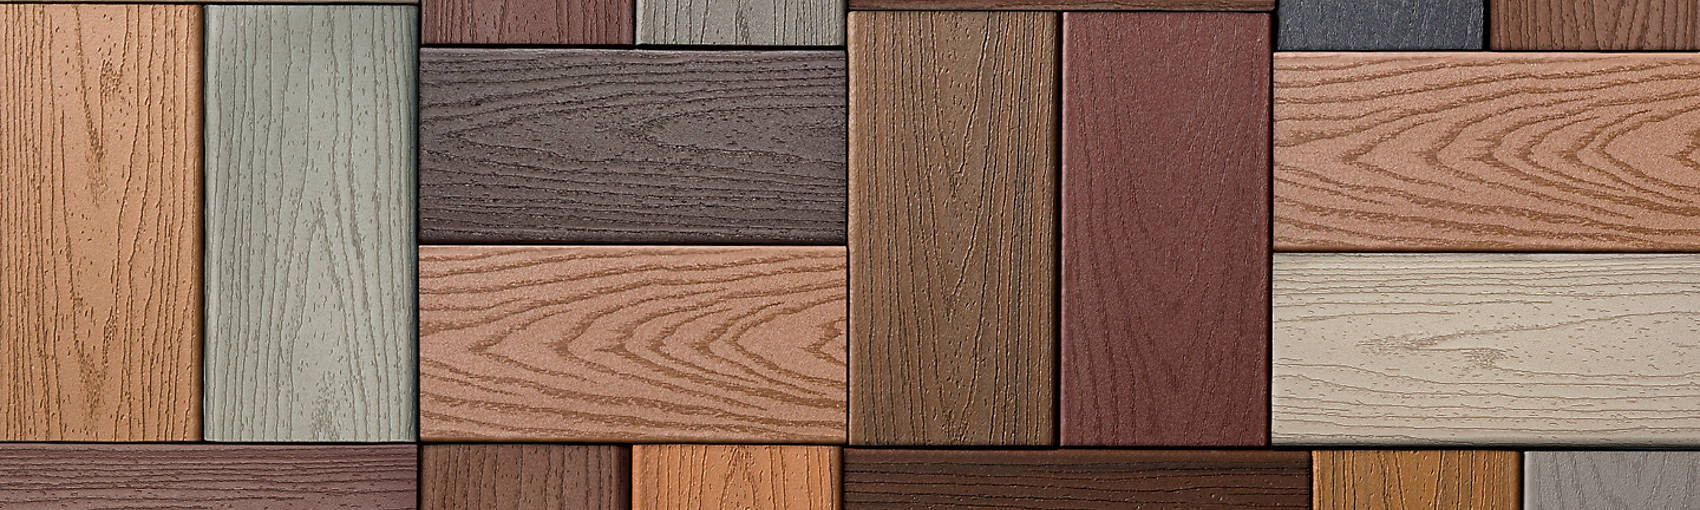 vintage hardwood flooring halifax ns of composite decking composite deck materials trex for trex color selector hero 2